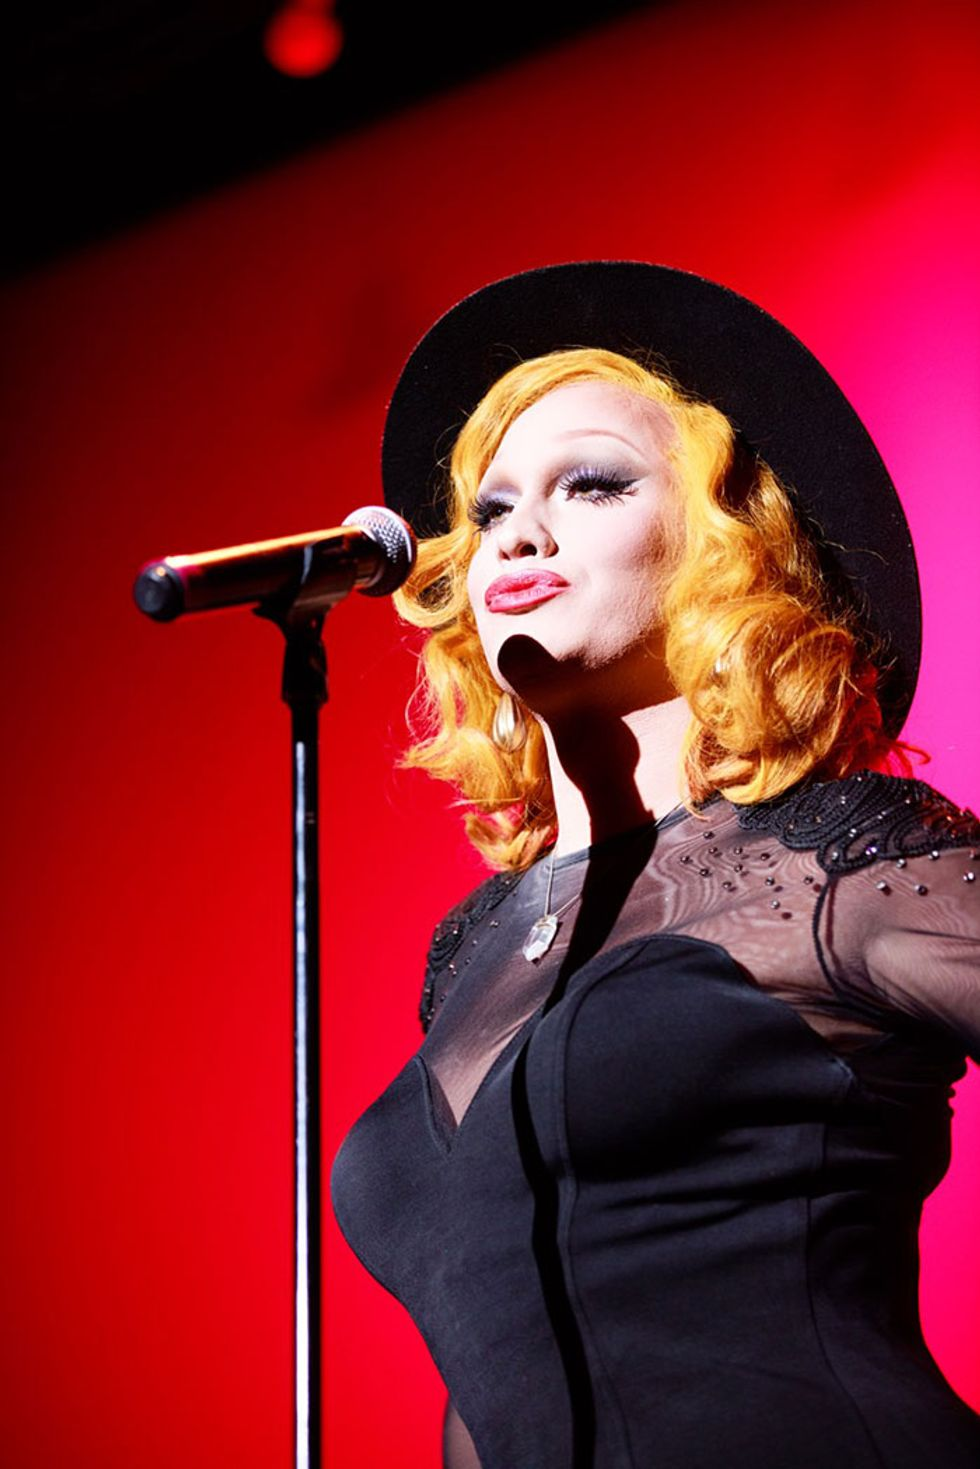 5 Ptown Drag Queens You Should Know